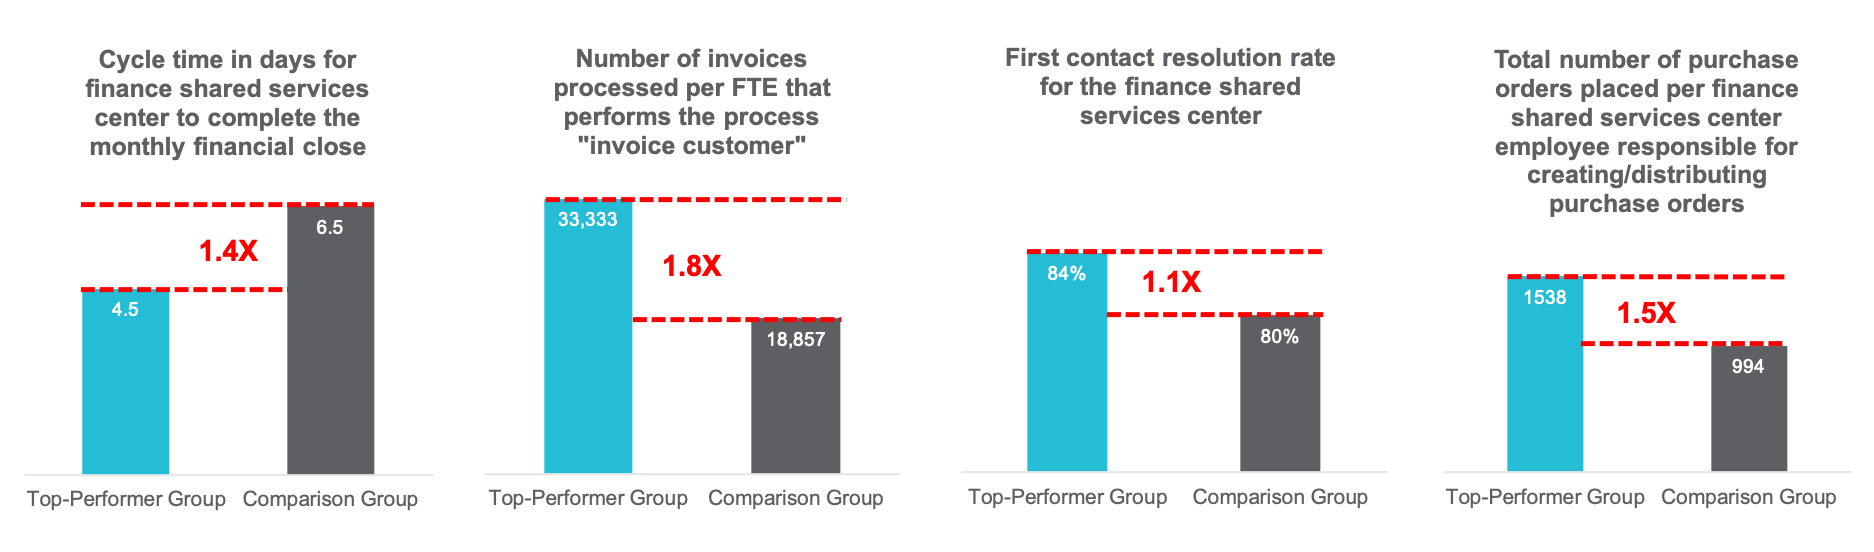 Efficiency Metrics: Top Performers Versus Comparison Group. Cycle time in days, number of invoices processed, first contact resolution rate, total number of purchase orders placed per FSS employee responsible